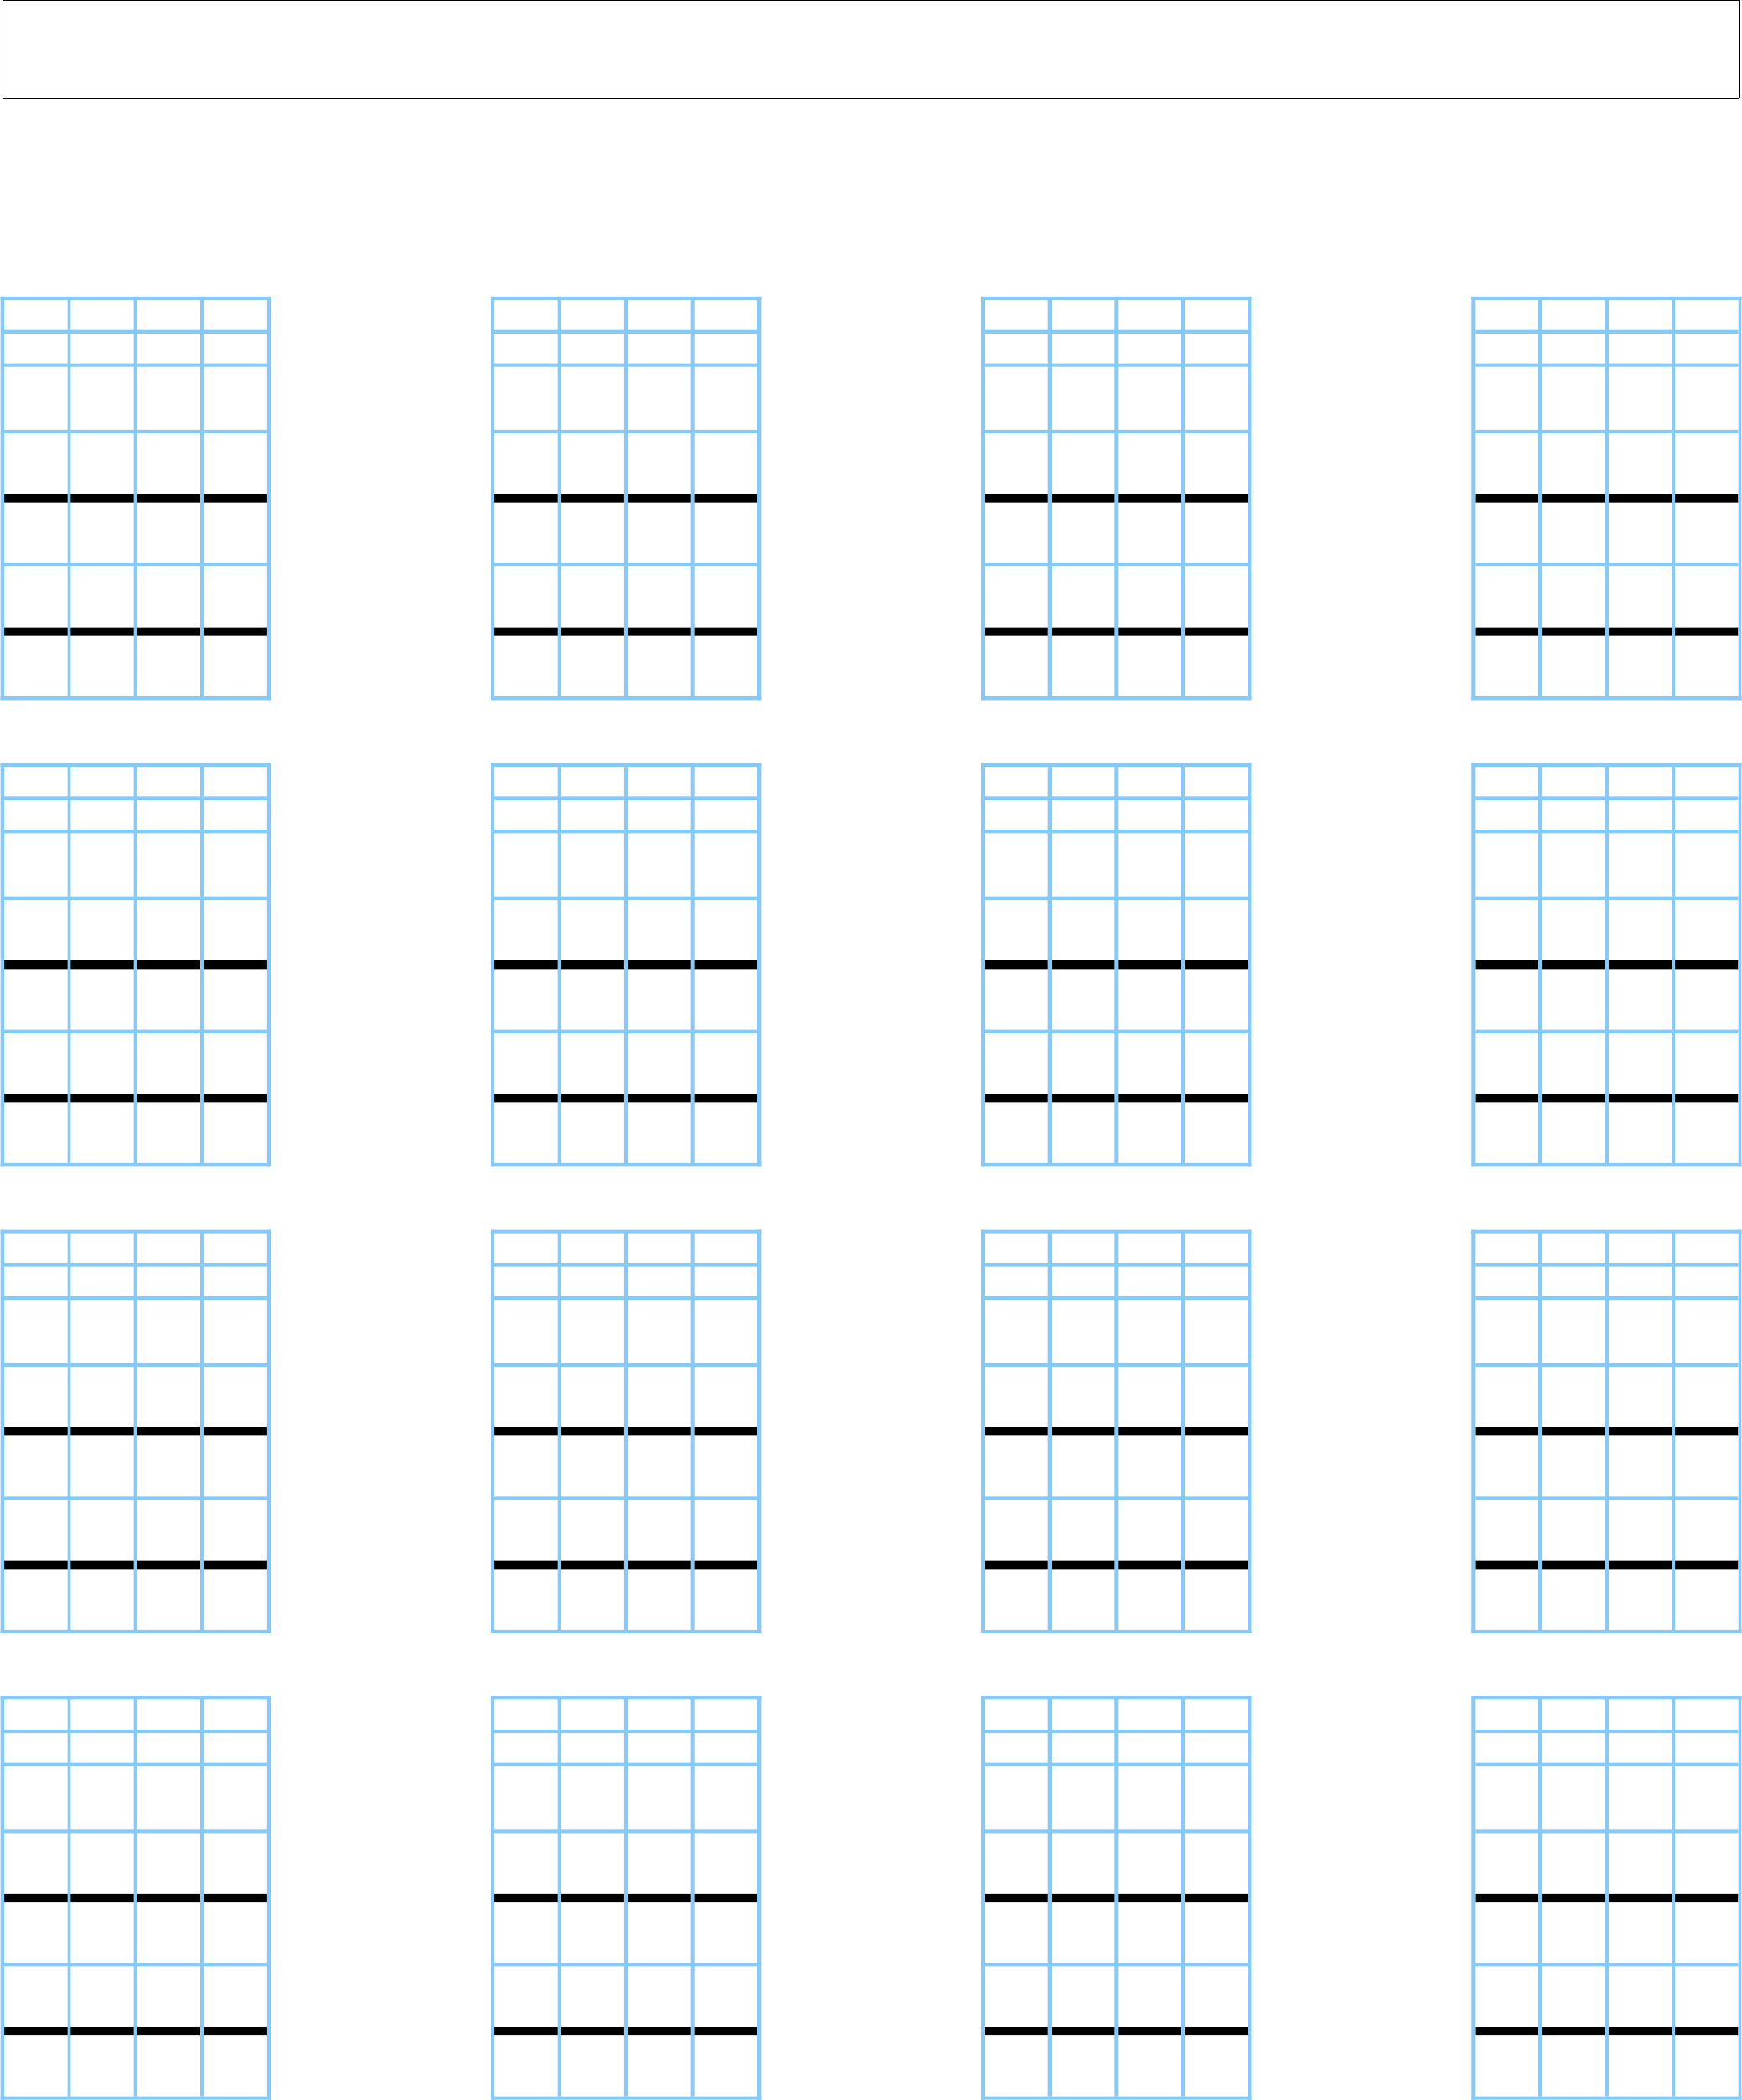 2 Digit By 2 Digit Multiplication Worksheets With Grids